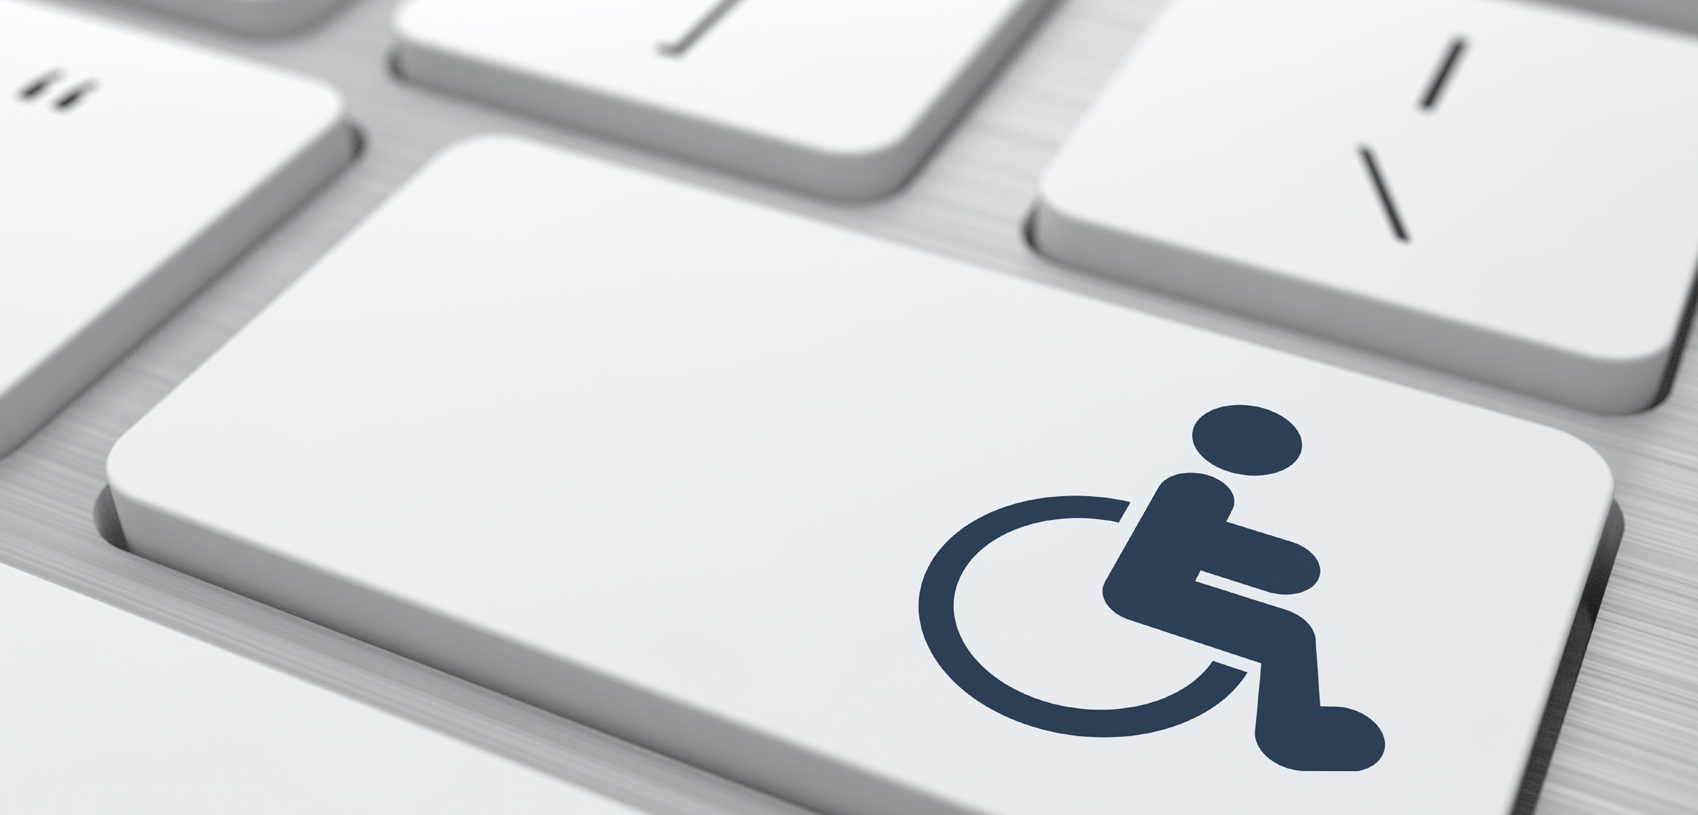 Georgia Institute Of Technology Leveraging Its Abilities To Work For People With Disabilities